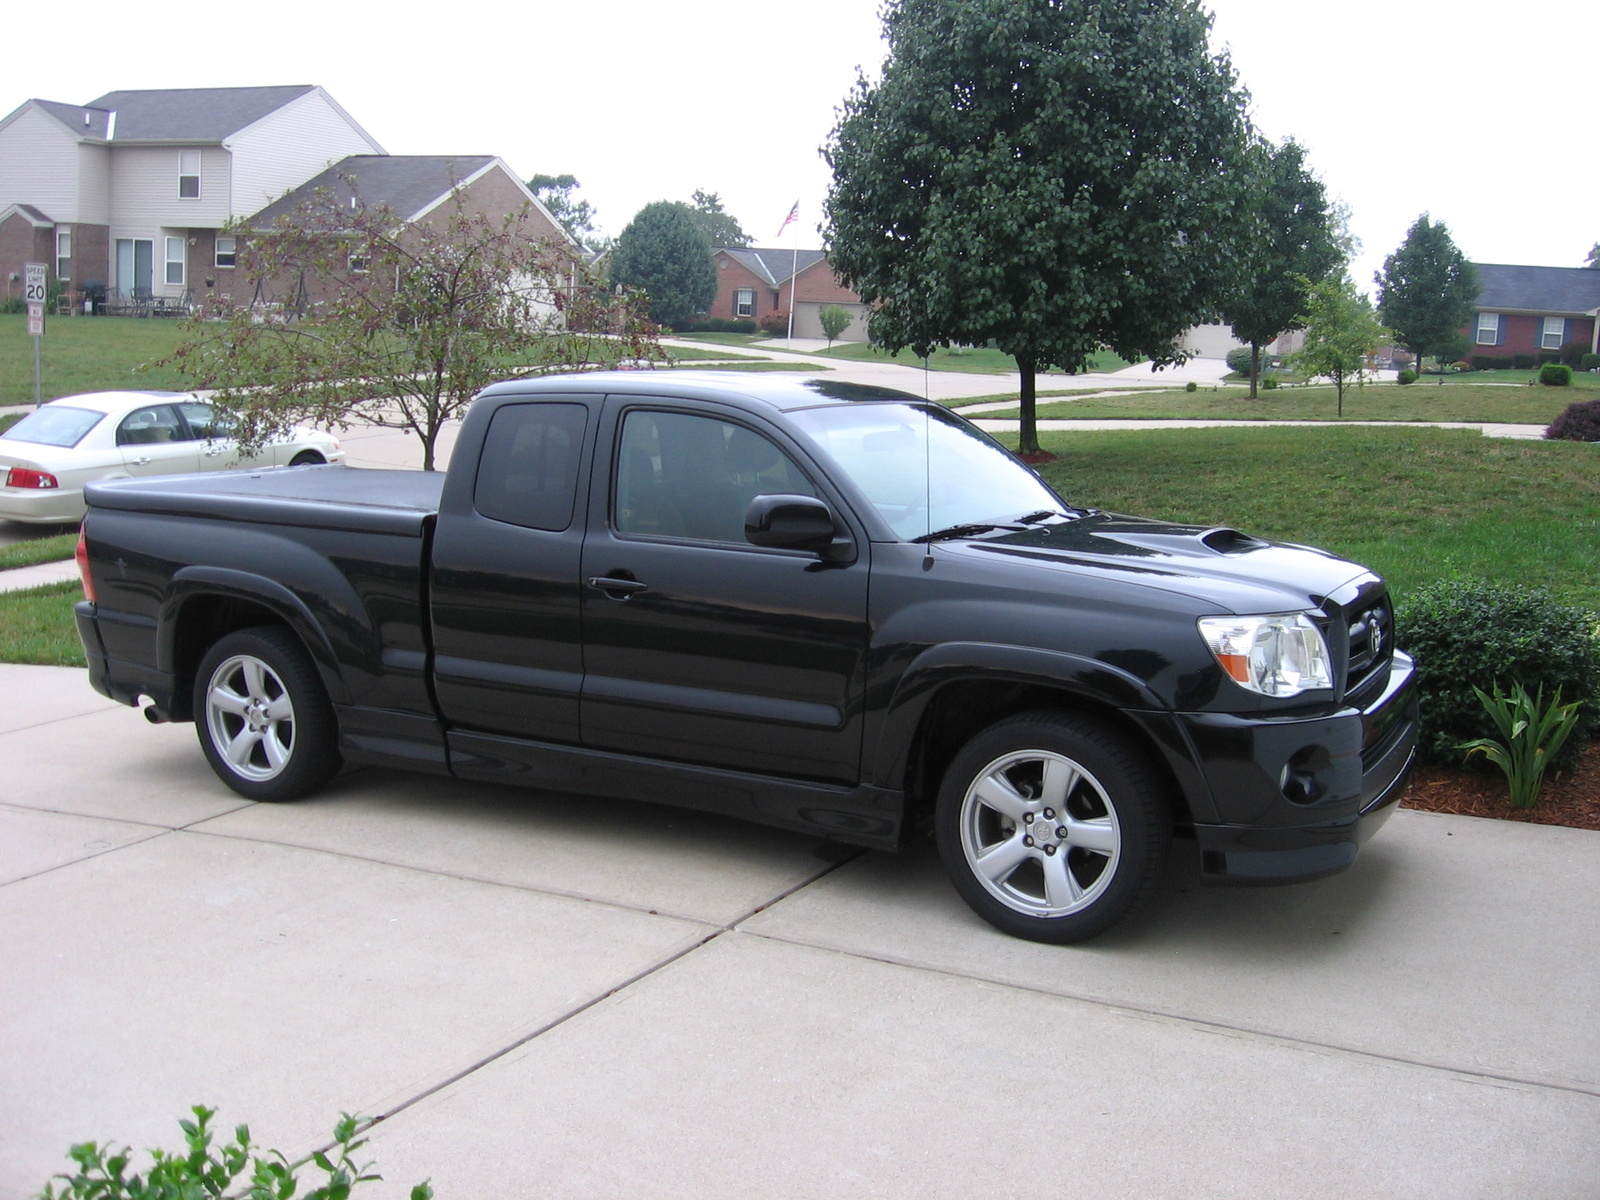 toyota tacoma x-runner-pic. 3